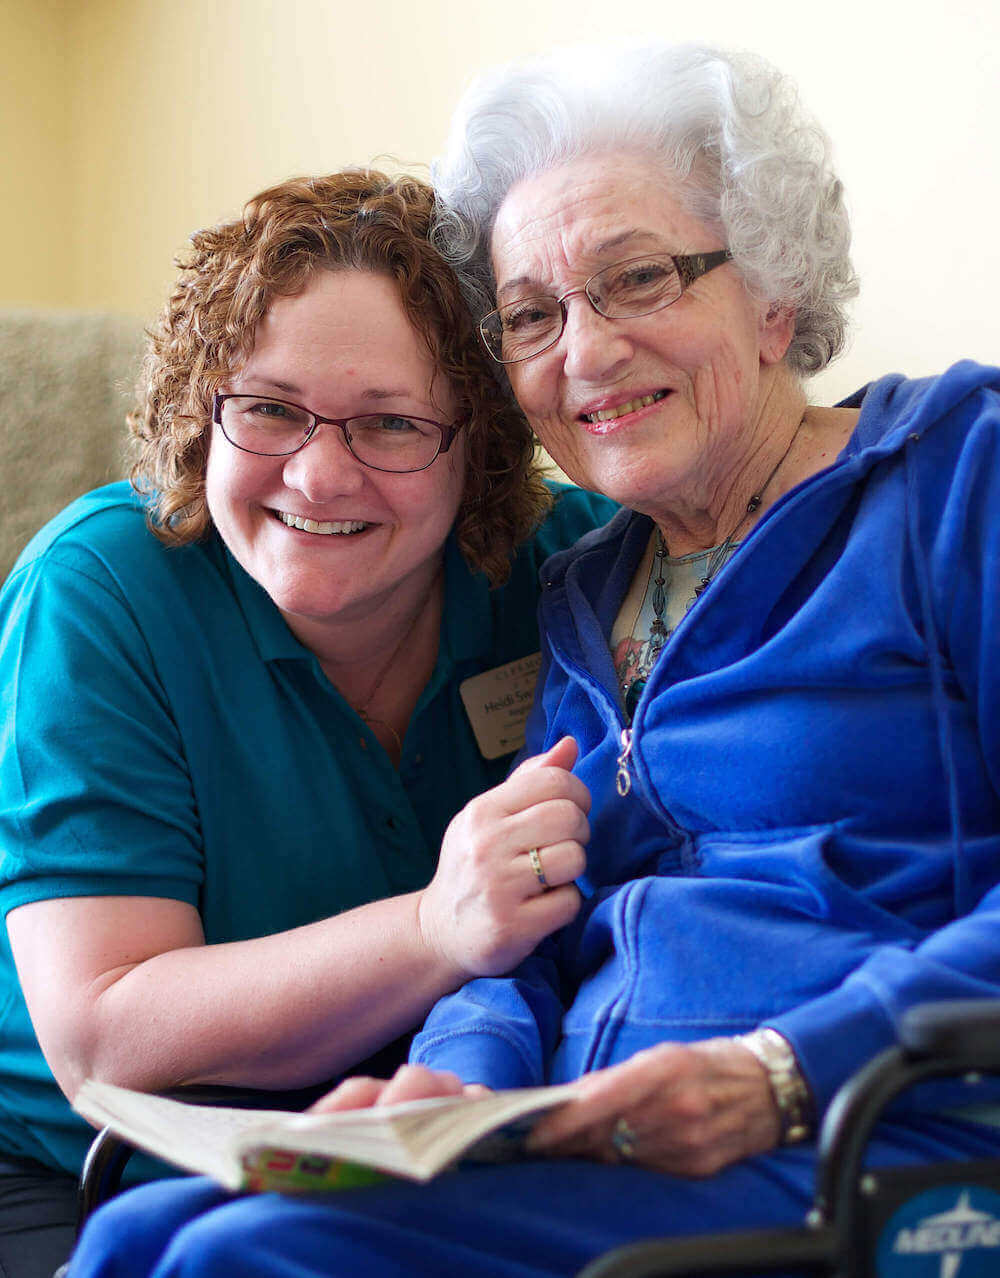 caregiver and senior enjoying smiles